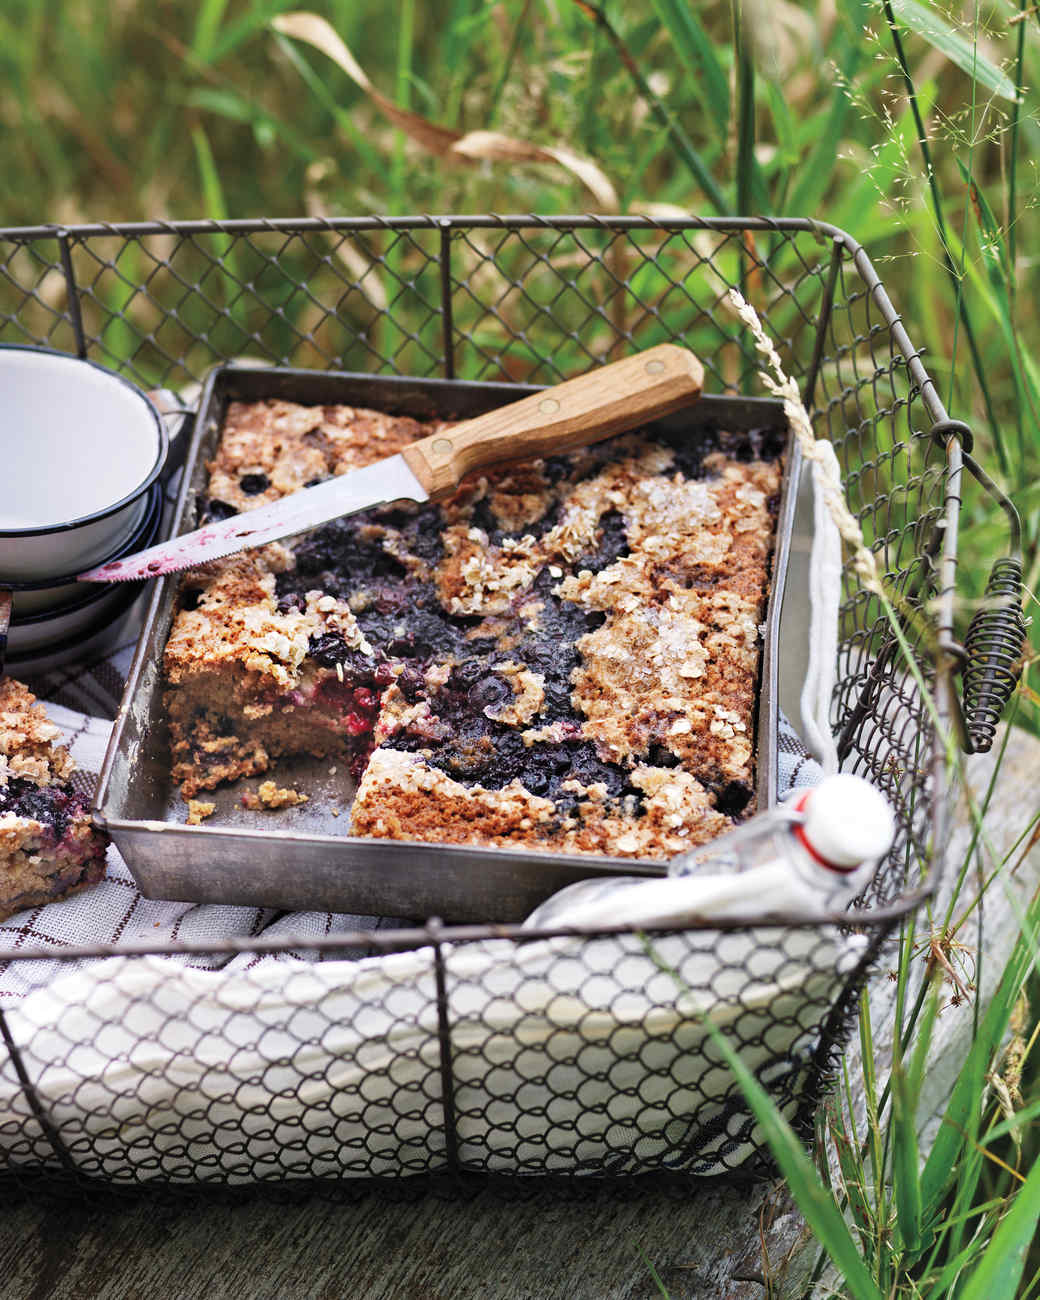 Oat Cake with Blueberries and Blackberries